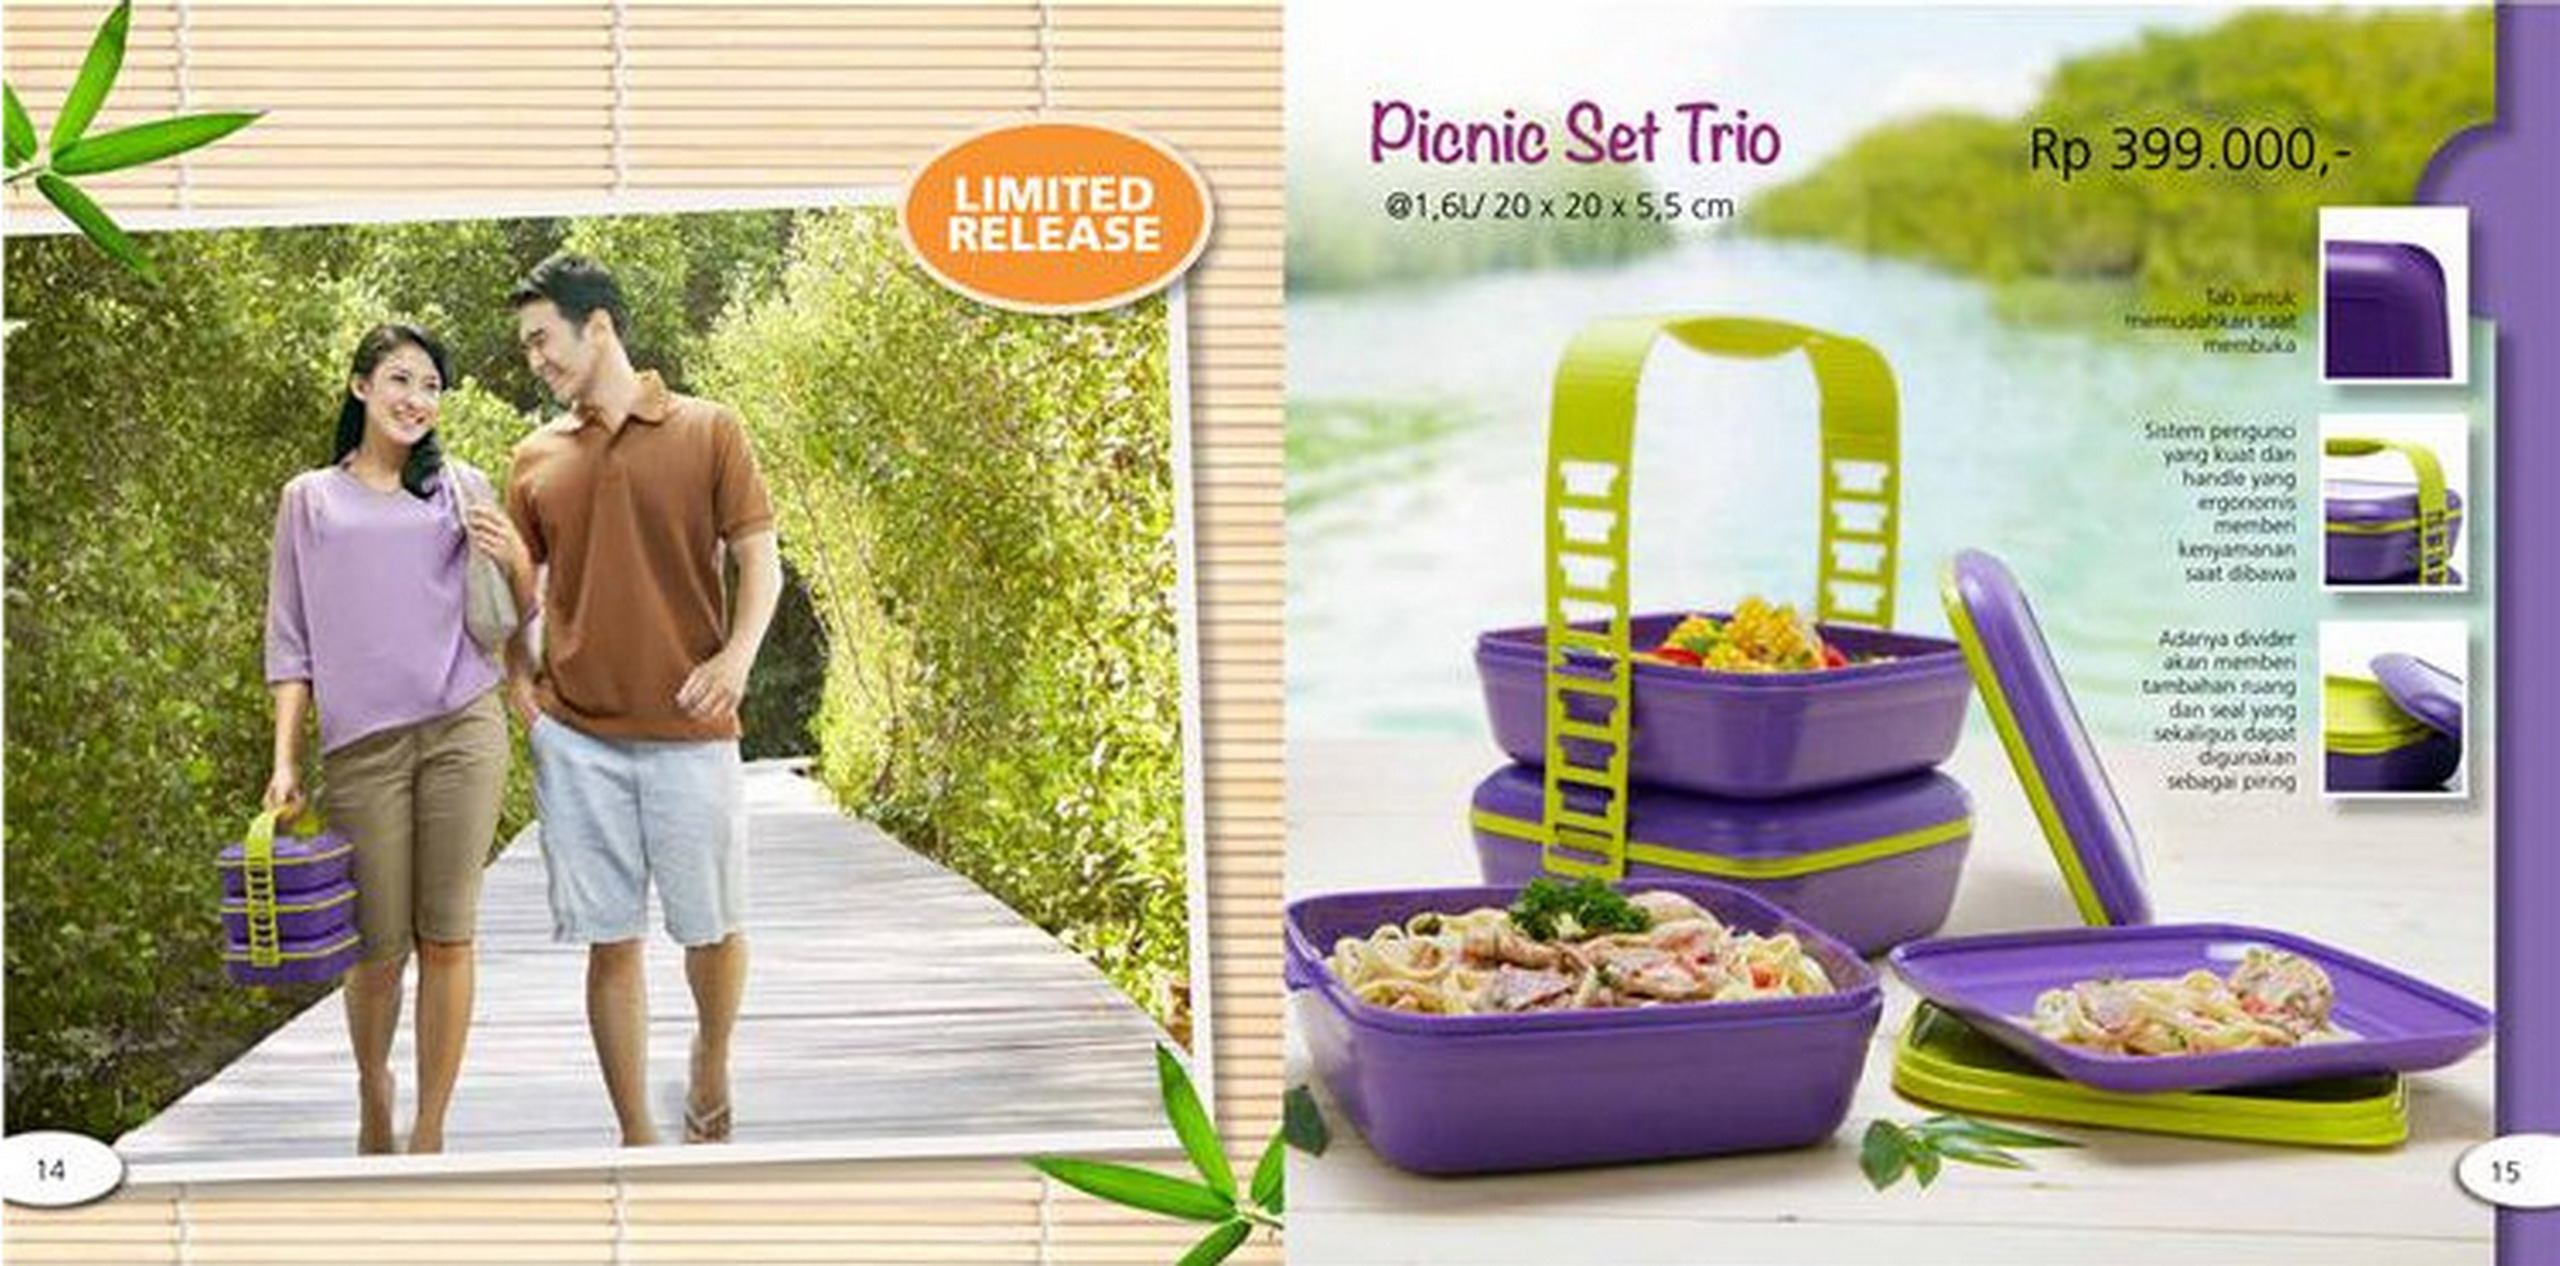 http://freetupperware.files.wordpress.com/2013/08/tupperware-picnic-set-trio.jpg